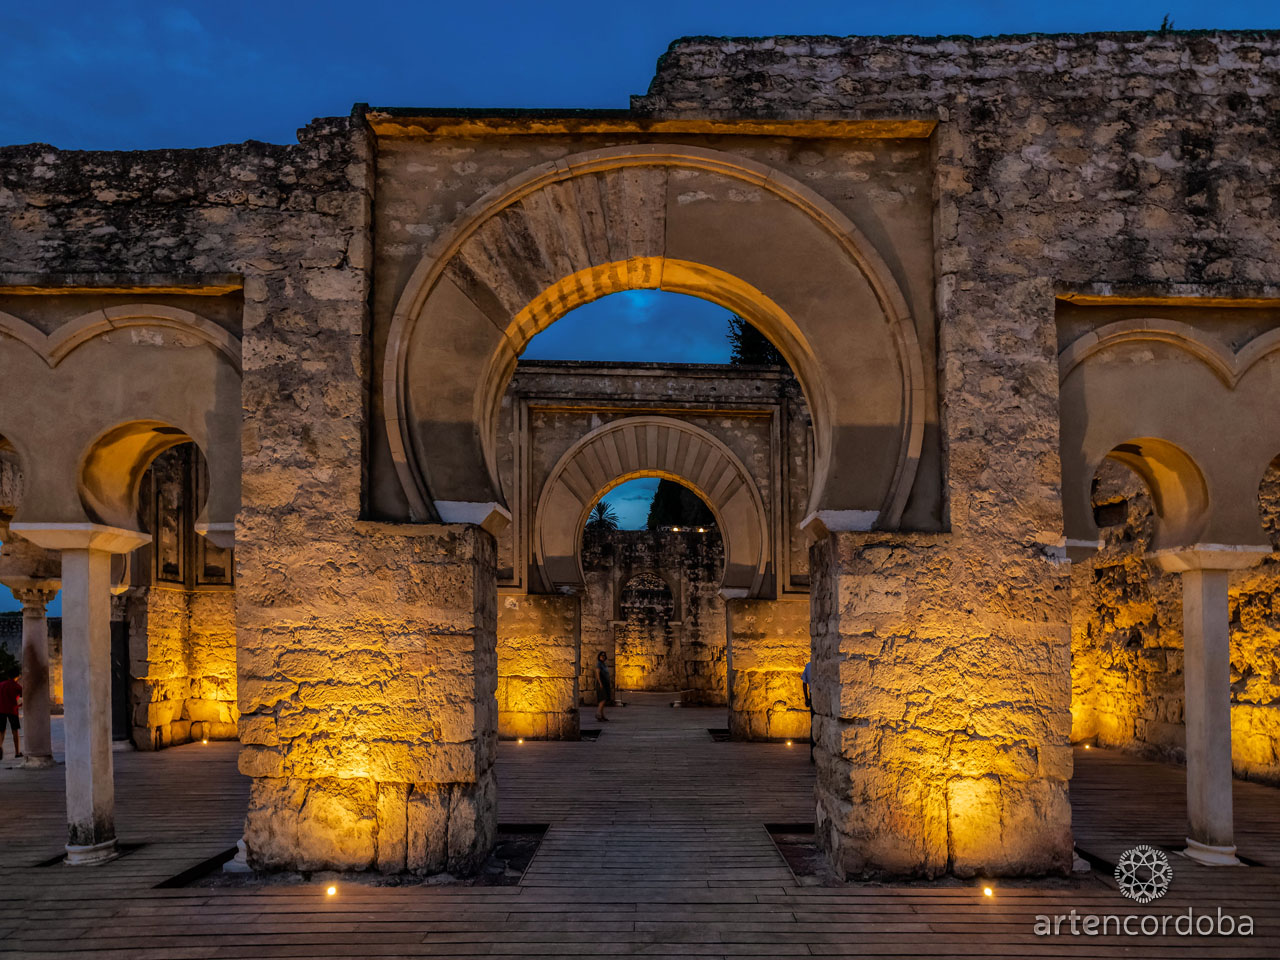 Guided Tour to Medina Azahara at Night